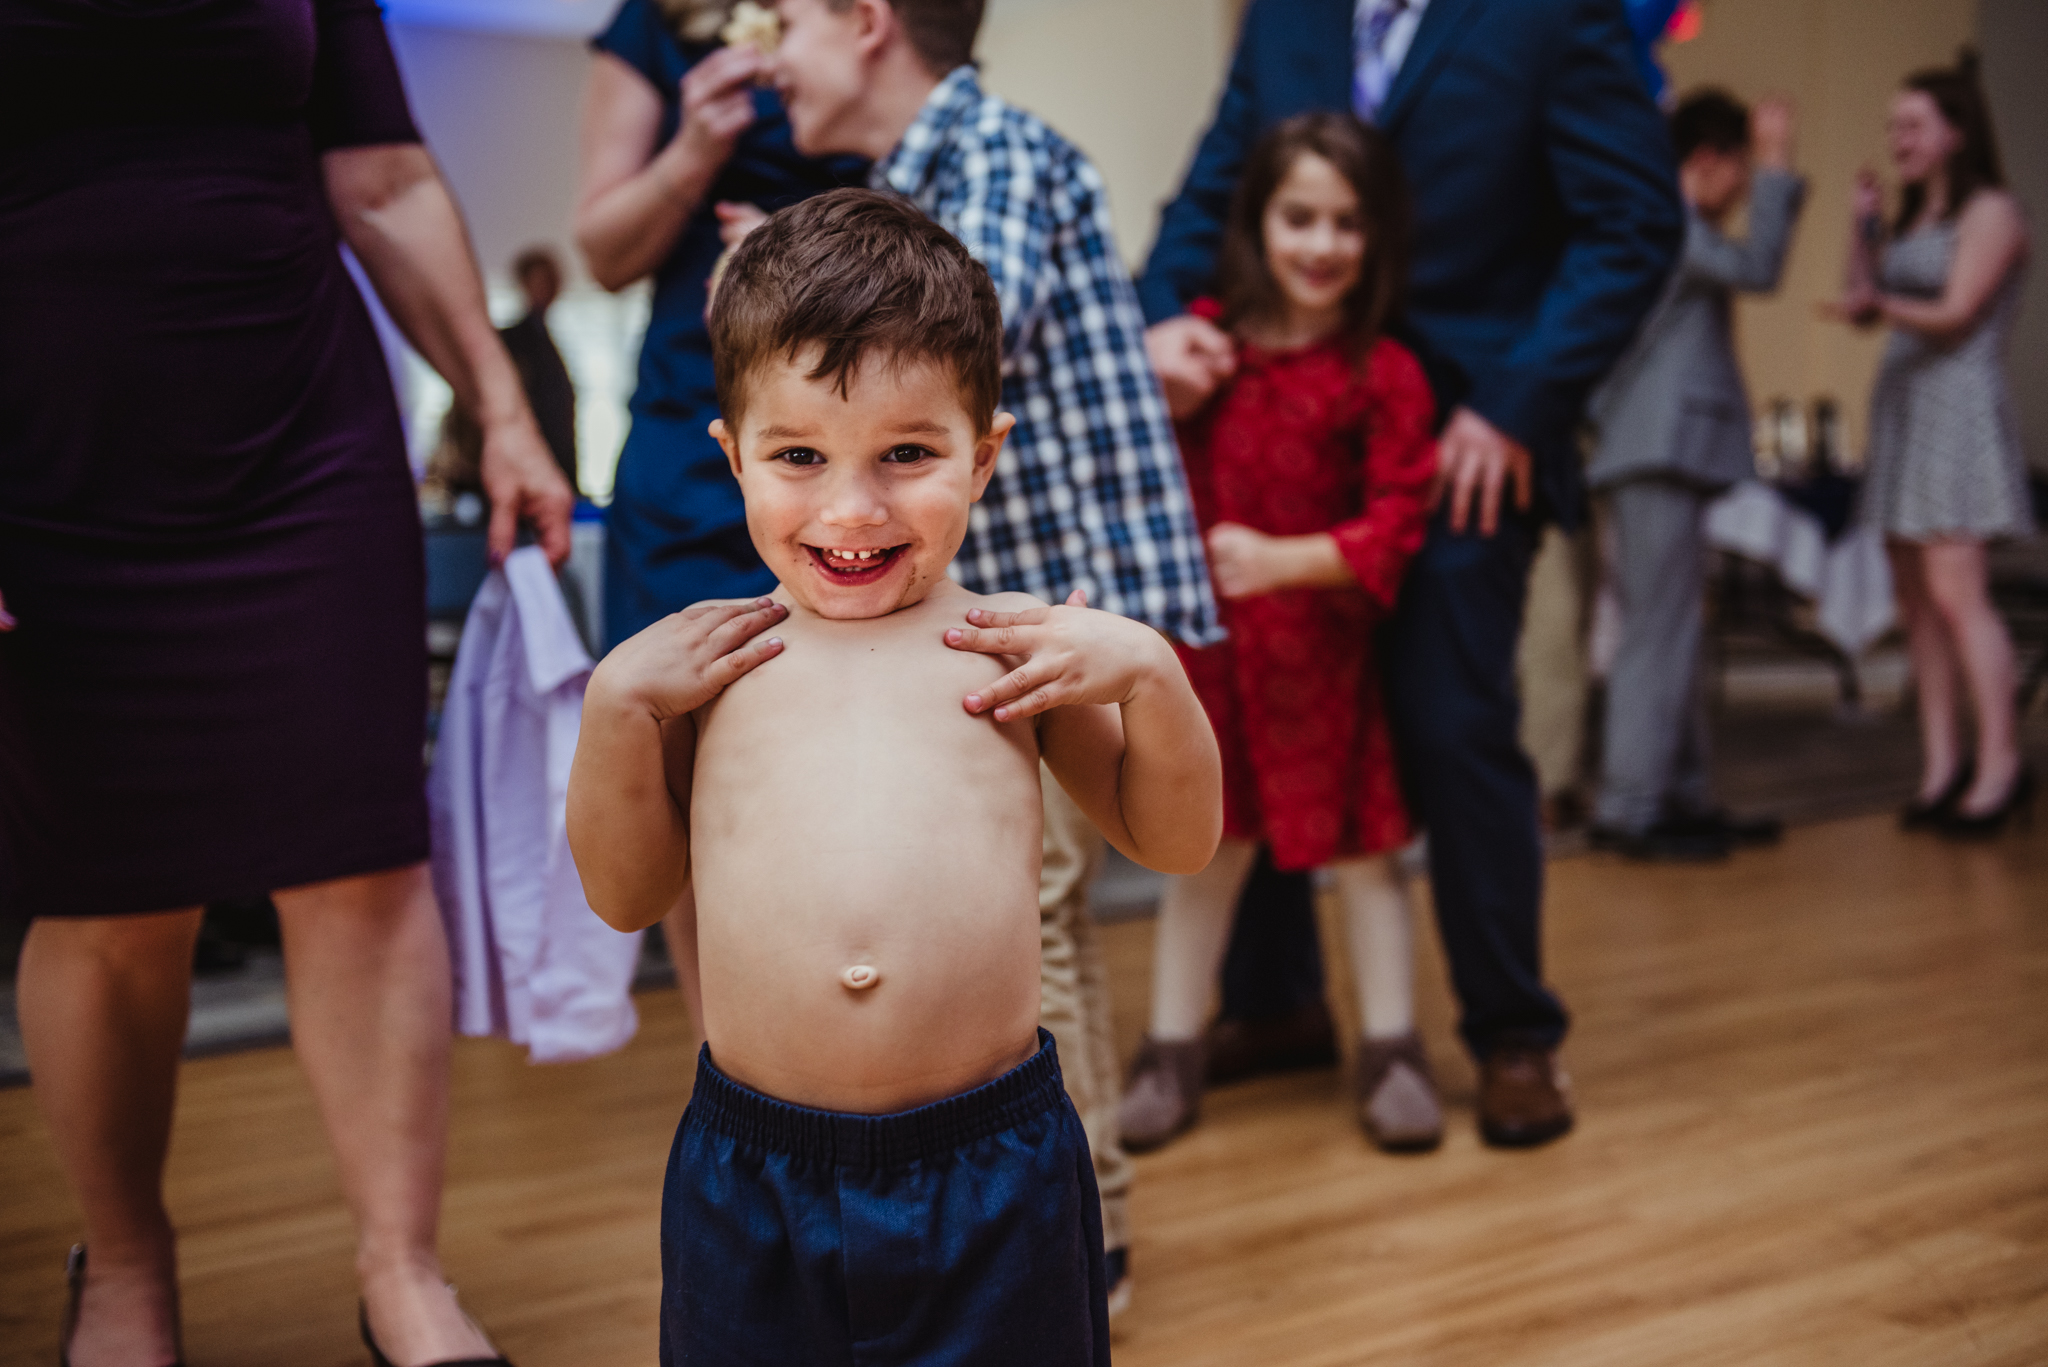 The four year old decided to take his shirt off and proudly show his belly button to the camera at the mitzvah reception.